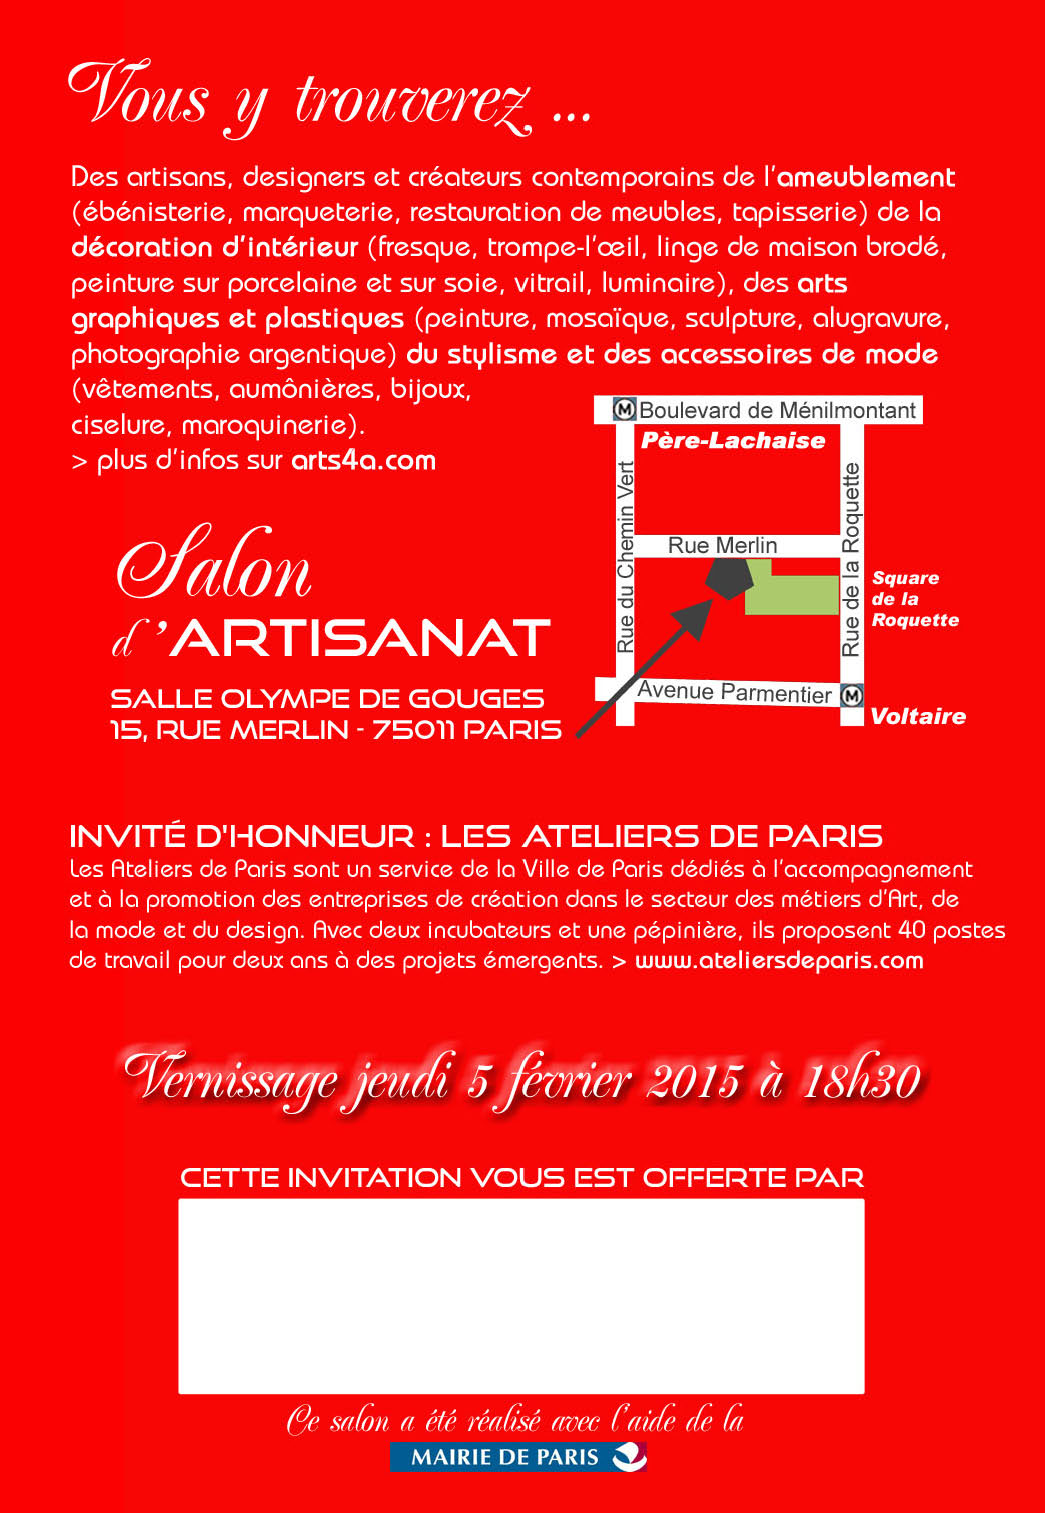 salon artisanat paris 2015